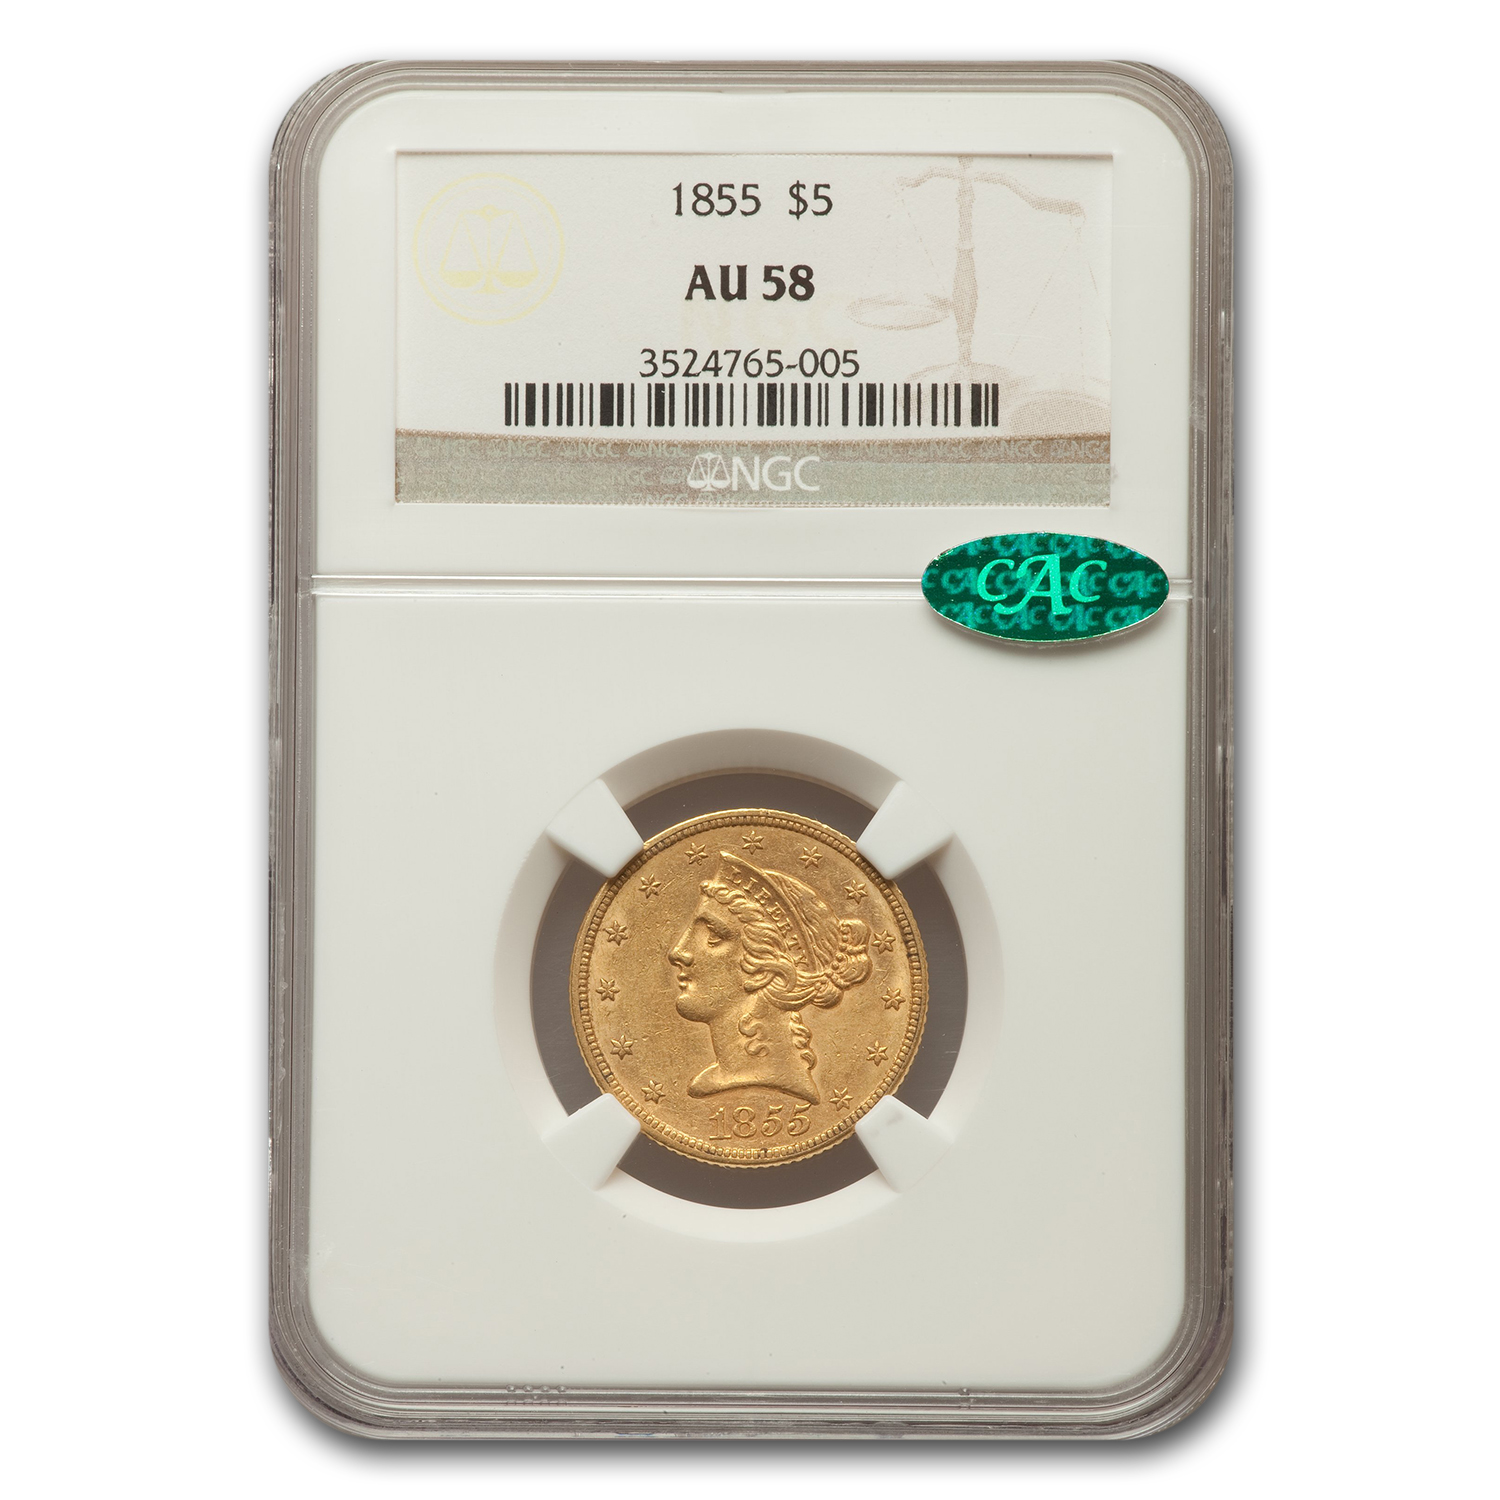 1855 $5 Liberty Half Eagle Almost Unc - 58 CAC NGC